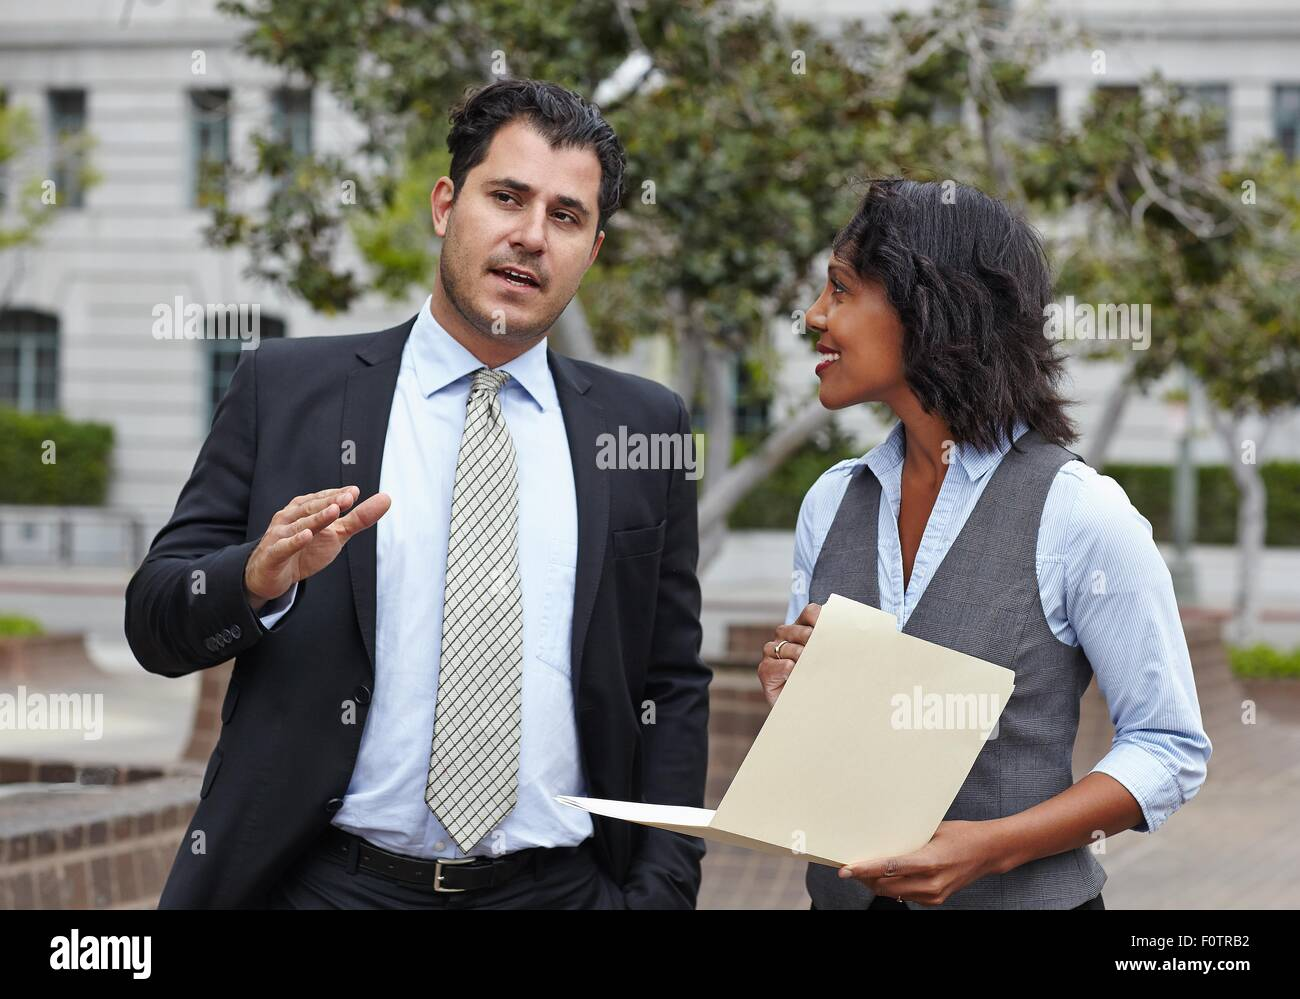 Front view of business people discussing paperwork, waist up, looking away - Stock Image